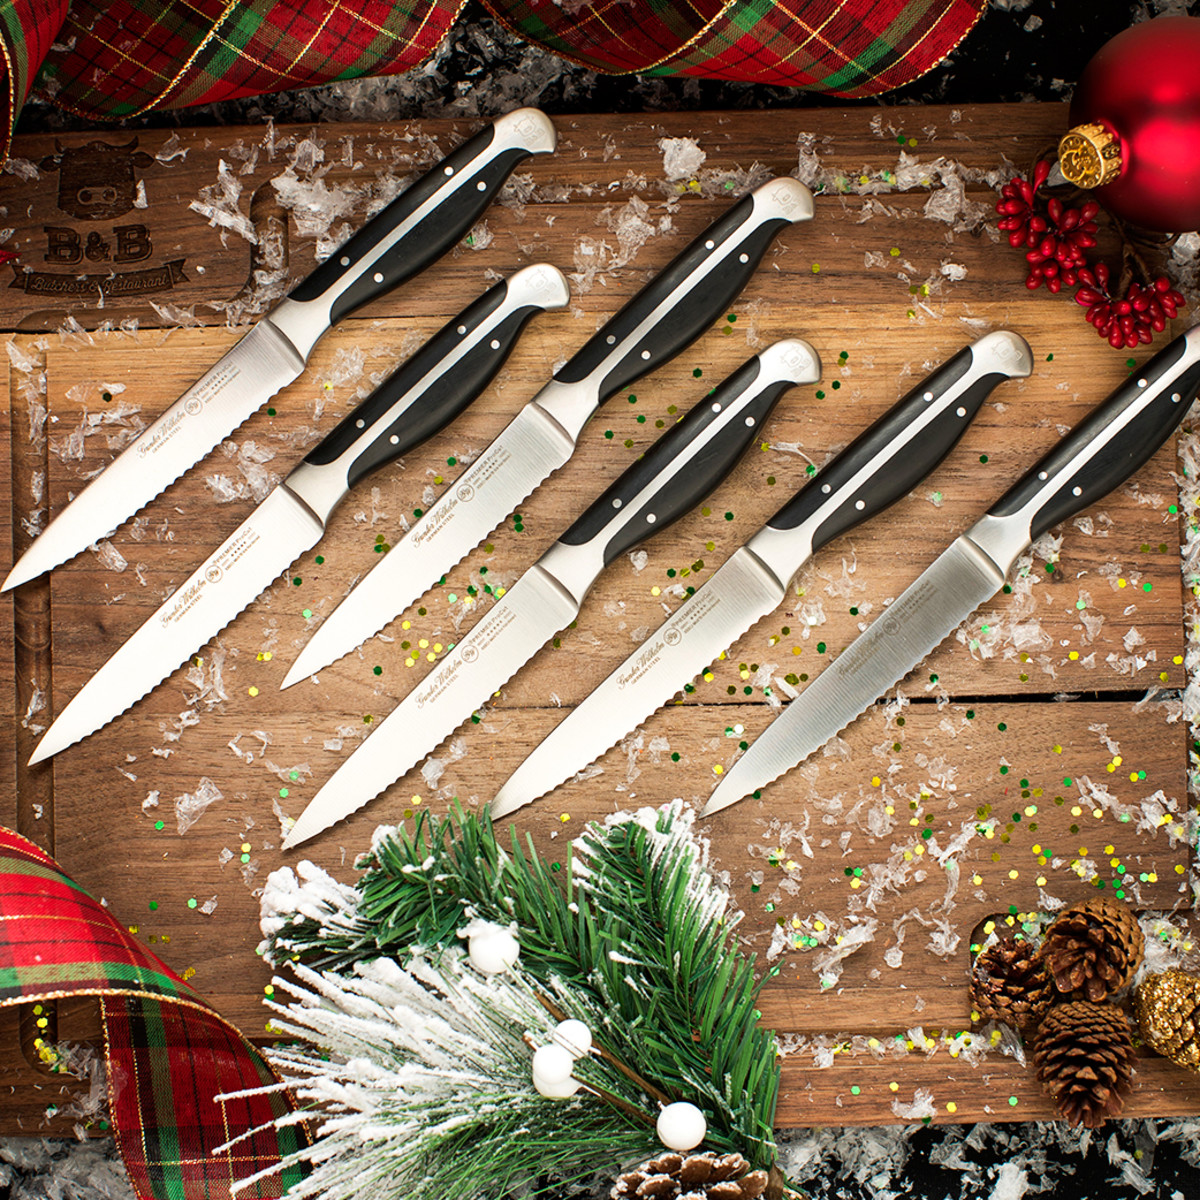 B&B Butcher knife set